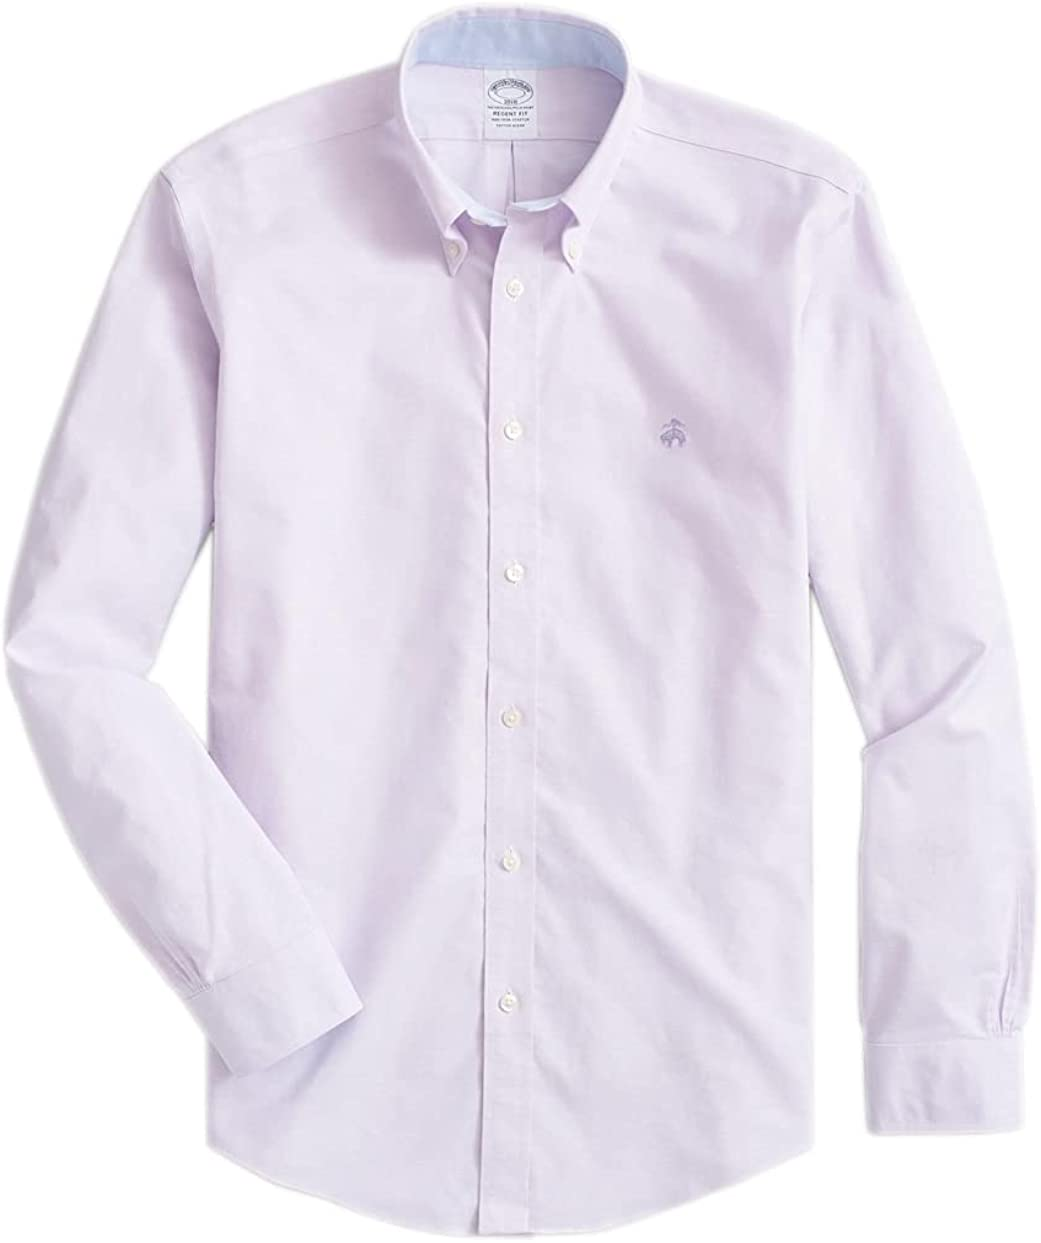 Brooks Brothers Men's Regent Fit The Original Polo Non Iron Oxford Shirt Contrast Collar